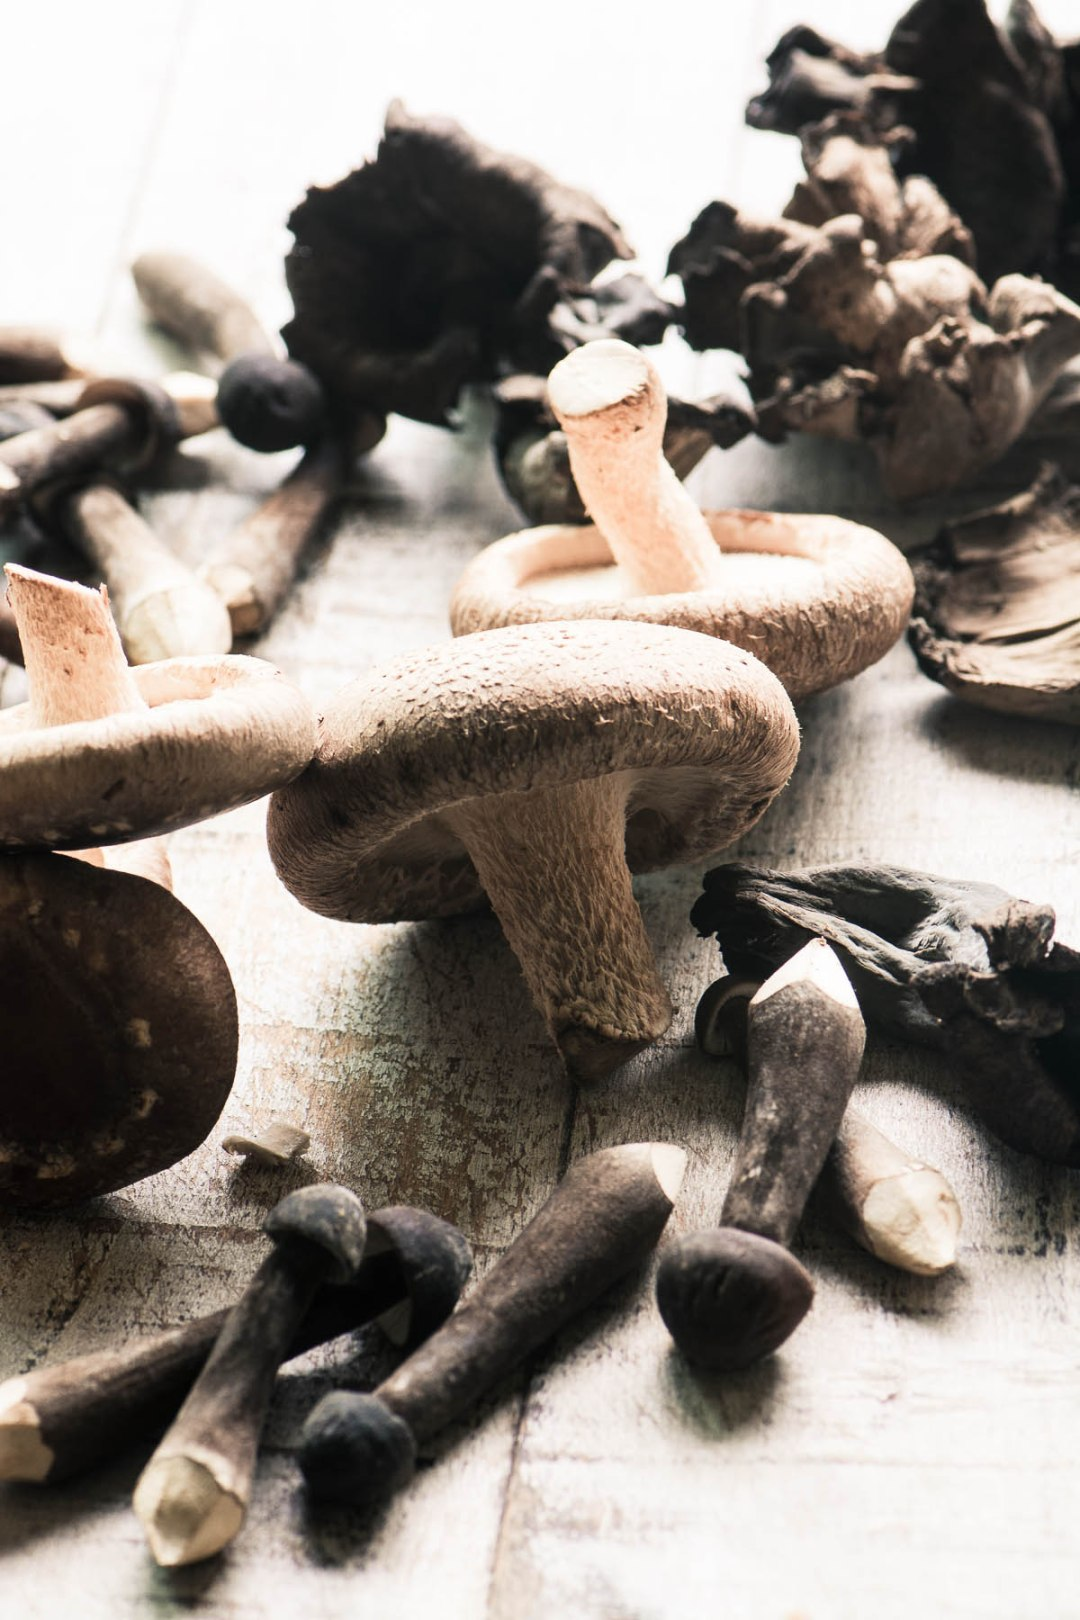 Raw and wild mushrooms for Pasta with Wild Mushrooms and Hazelnuts